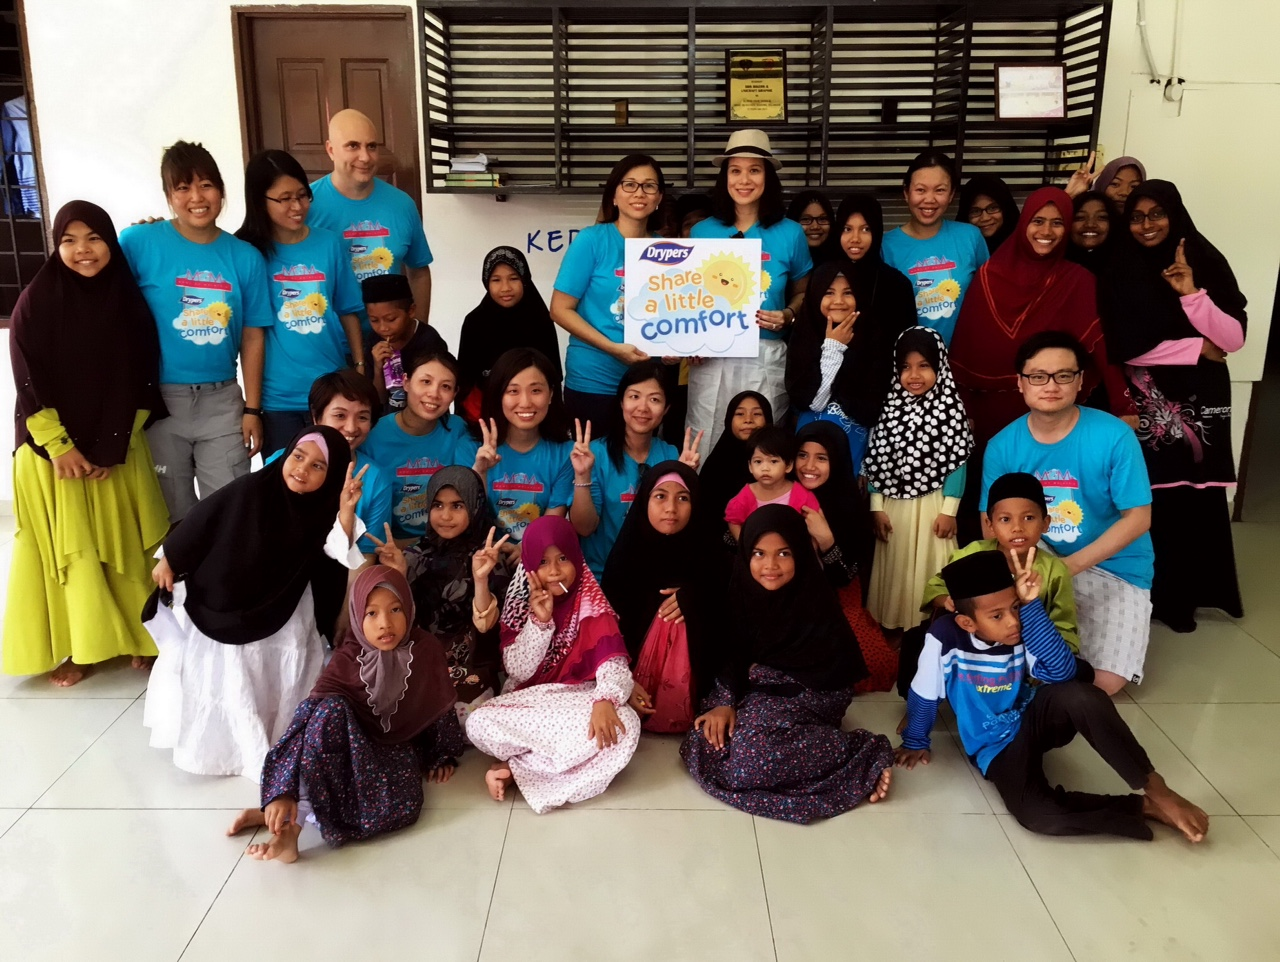 Evelyn Chan, Marketing Director of SCA Hygiene Marketing Malaysia Sdn Bhd (center left), Elaine Daly, Drypers' Moms of Malaysia (MOM) advocate (center right), volunteers with children at the orphanage